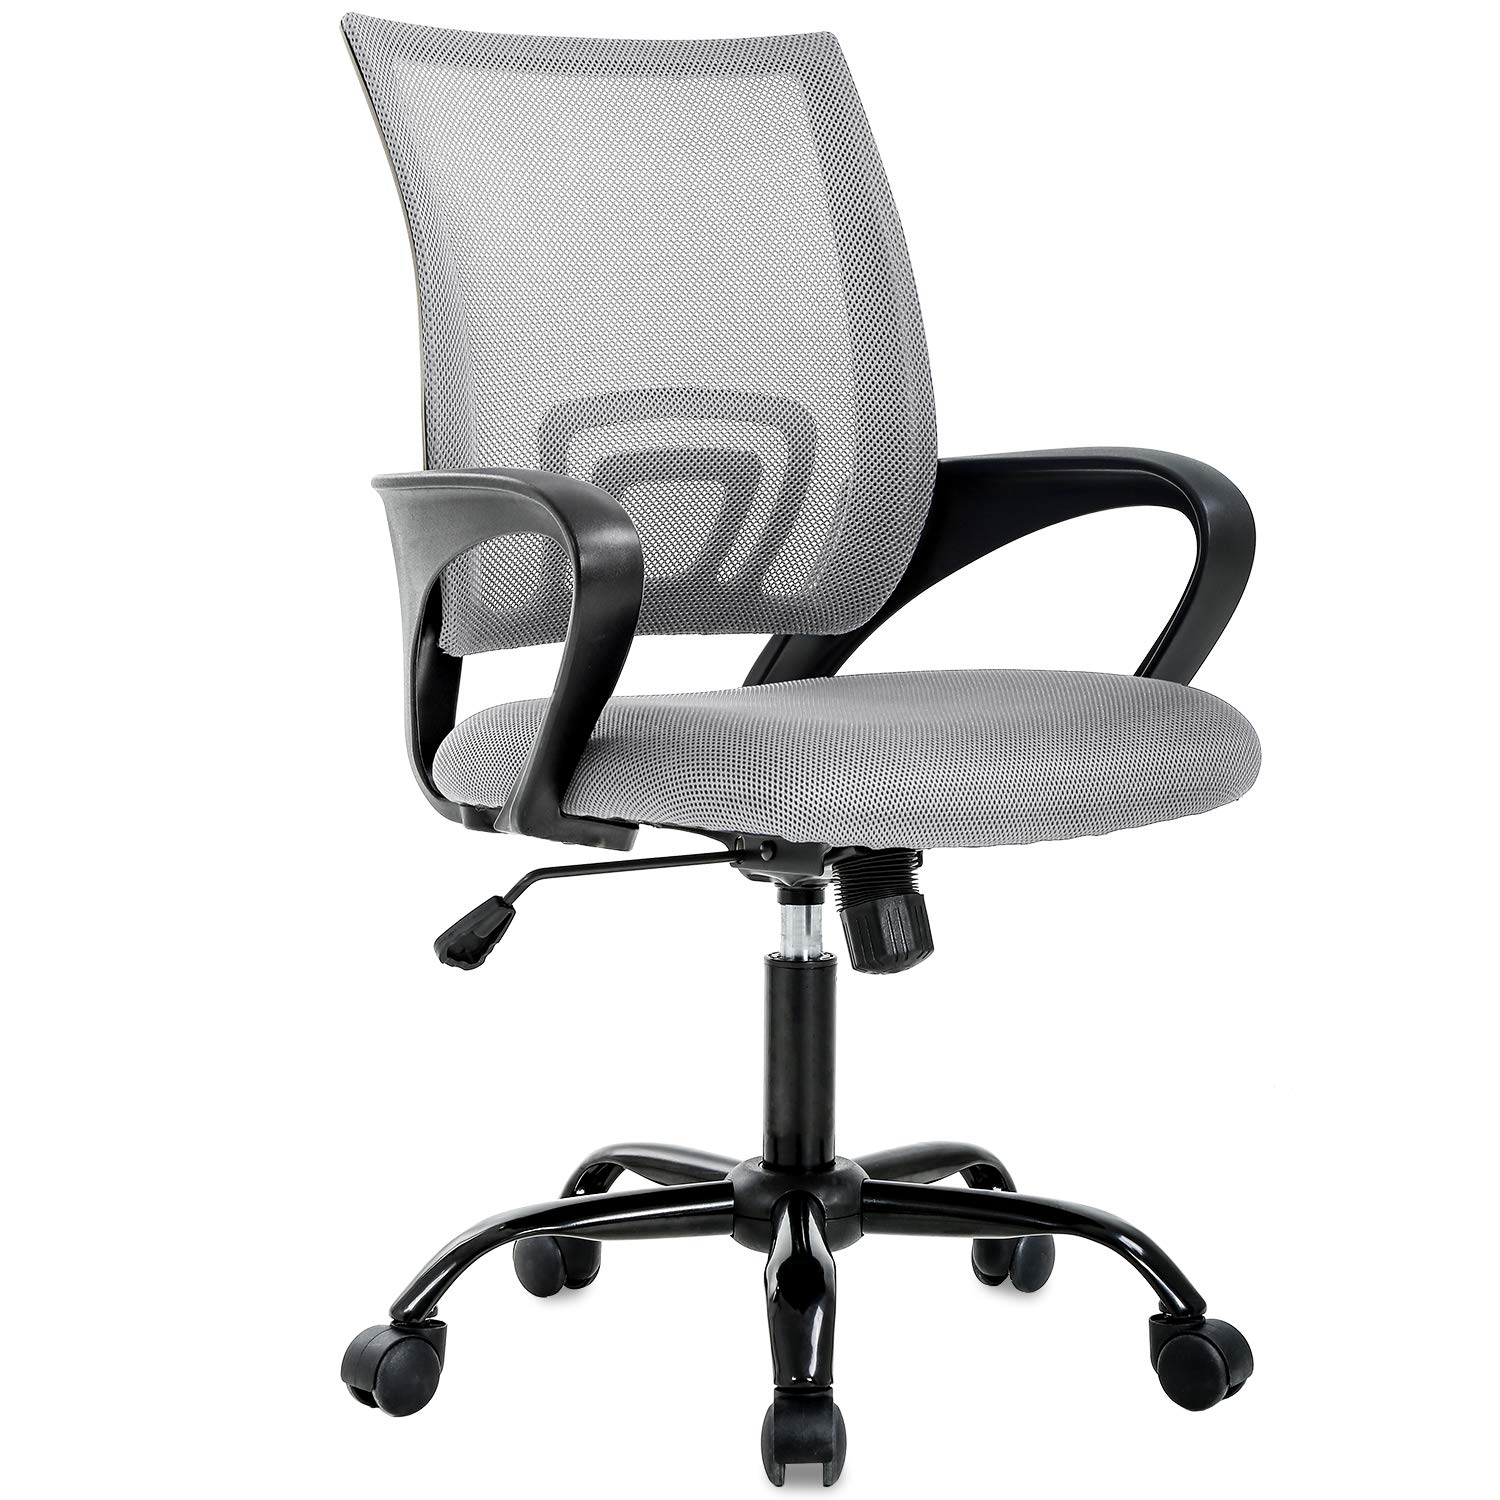 BestOffice Mesh Computer Chair Back Support Modern Executive Adjustable Chair Task Rolling Swivel Chair for Women, Men